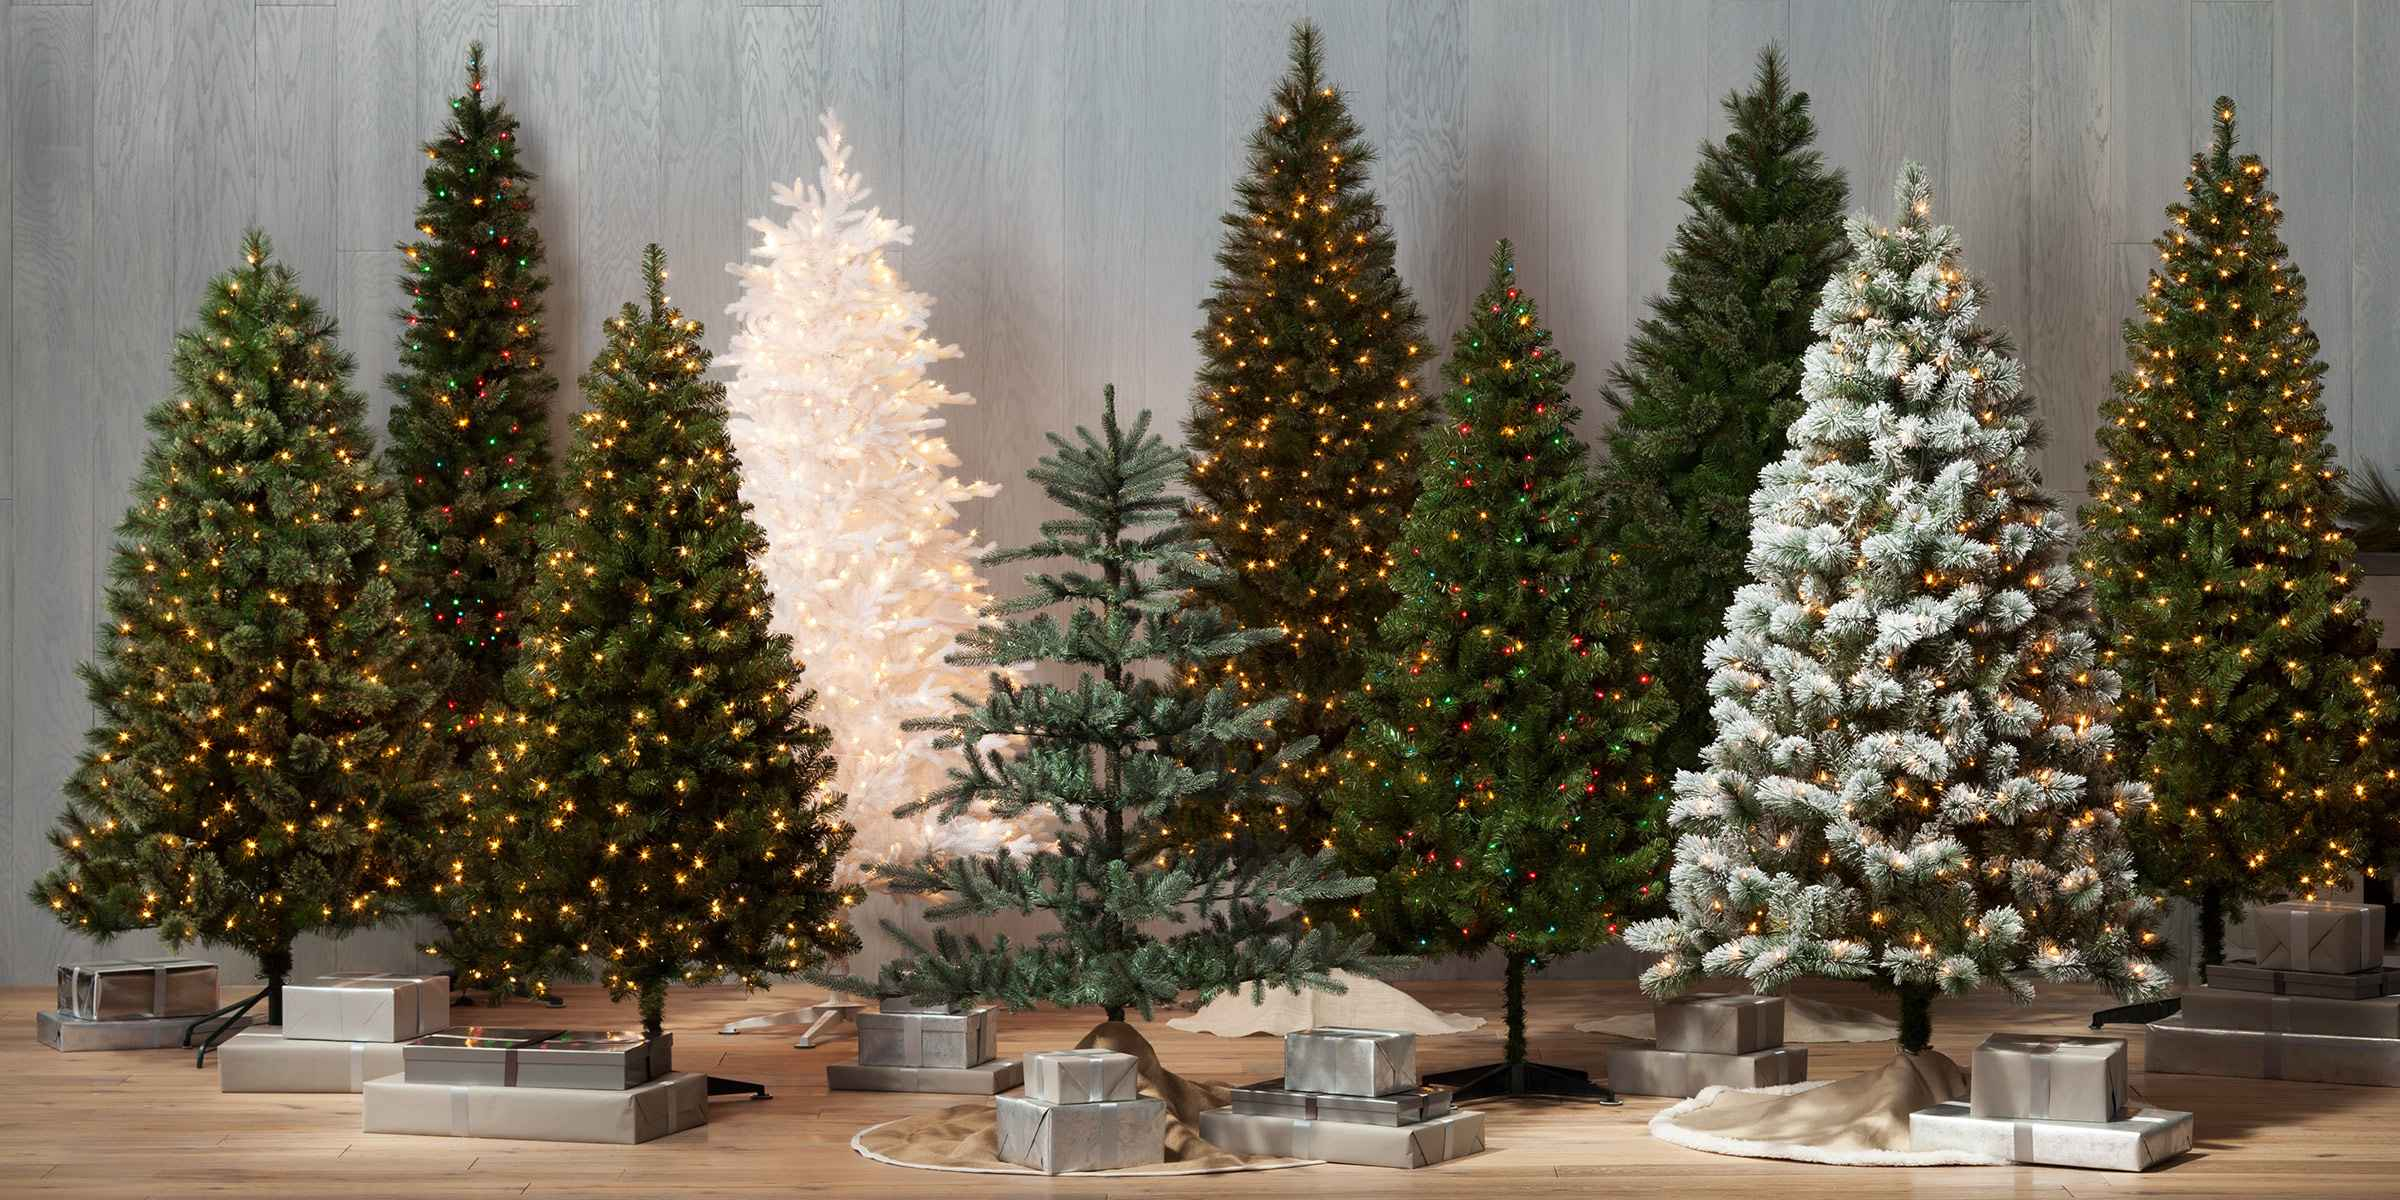 History Behind The Christmas Tree Part - 27: The Christmas Tree. PHOTO: Target.com